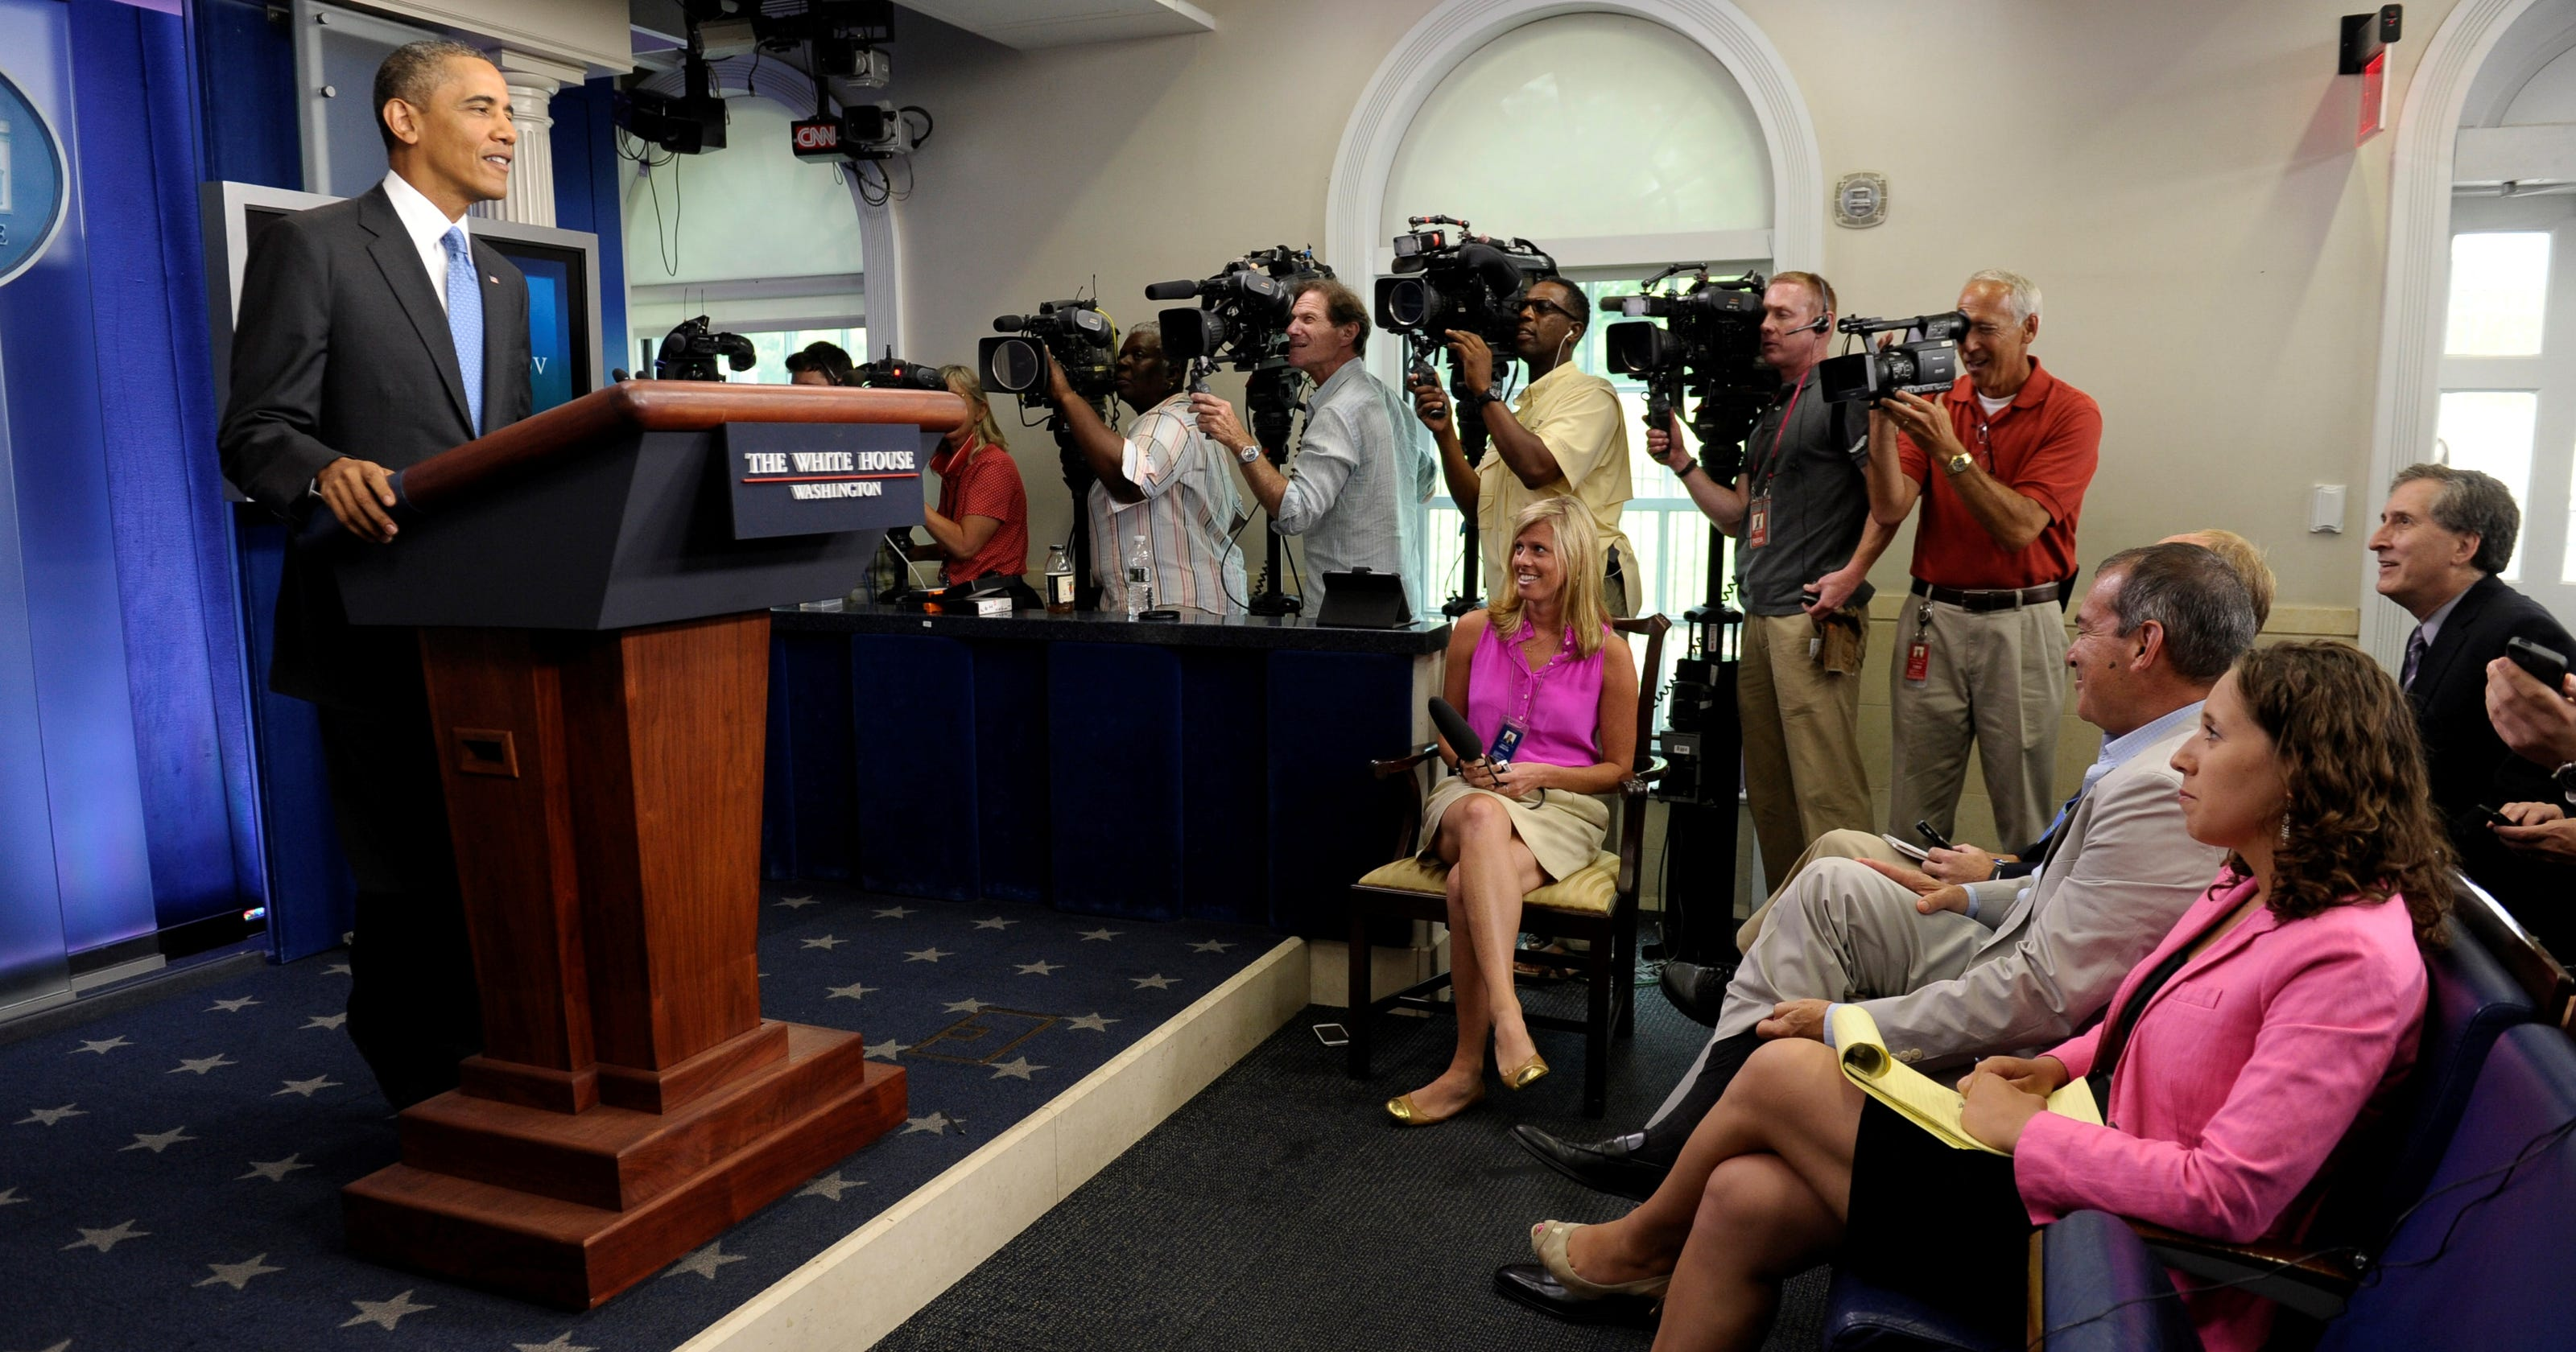 Former Obama aide: End daily televised press briefings